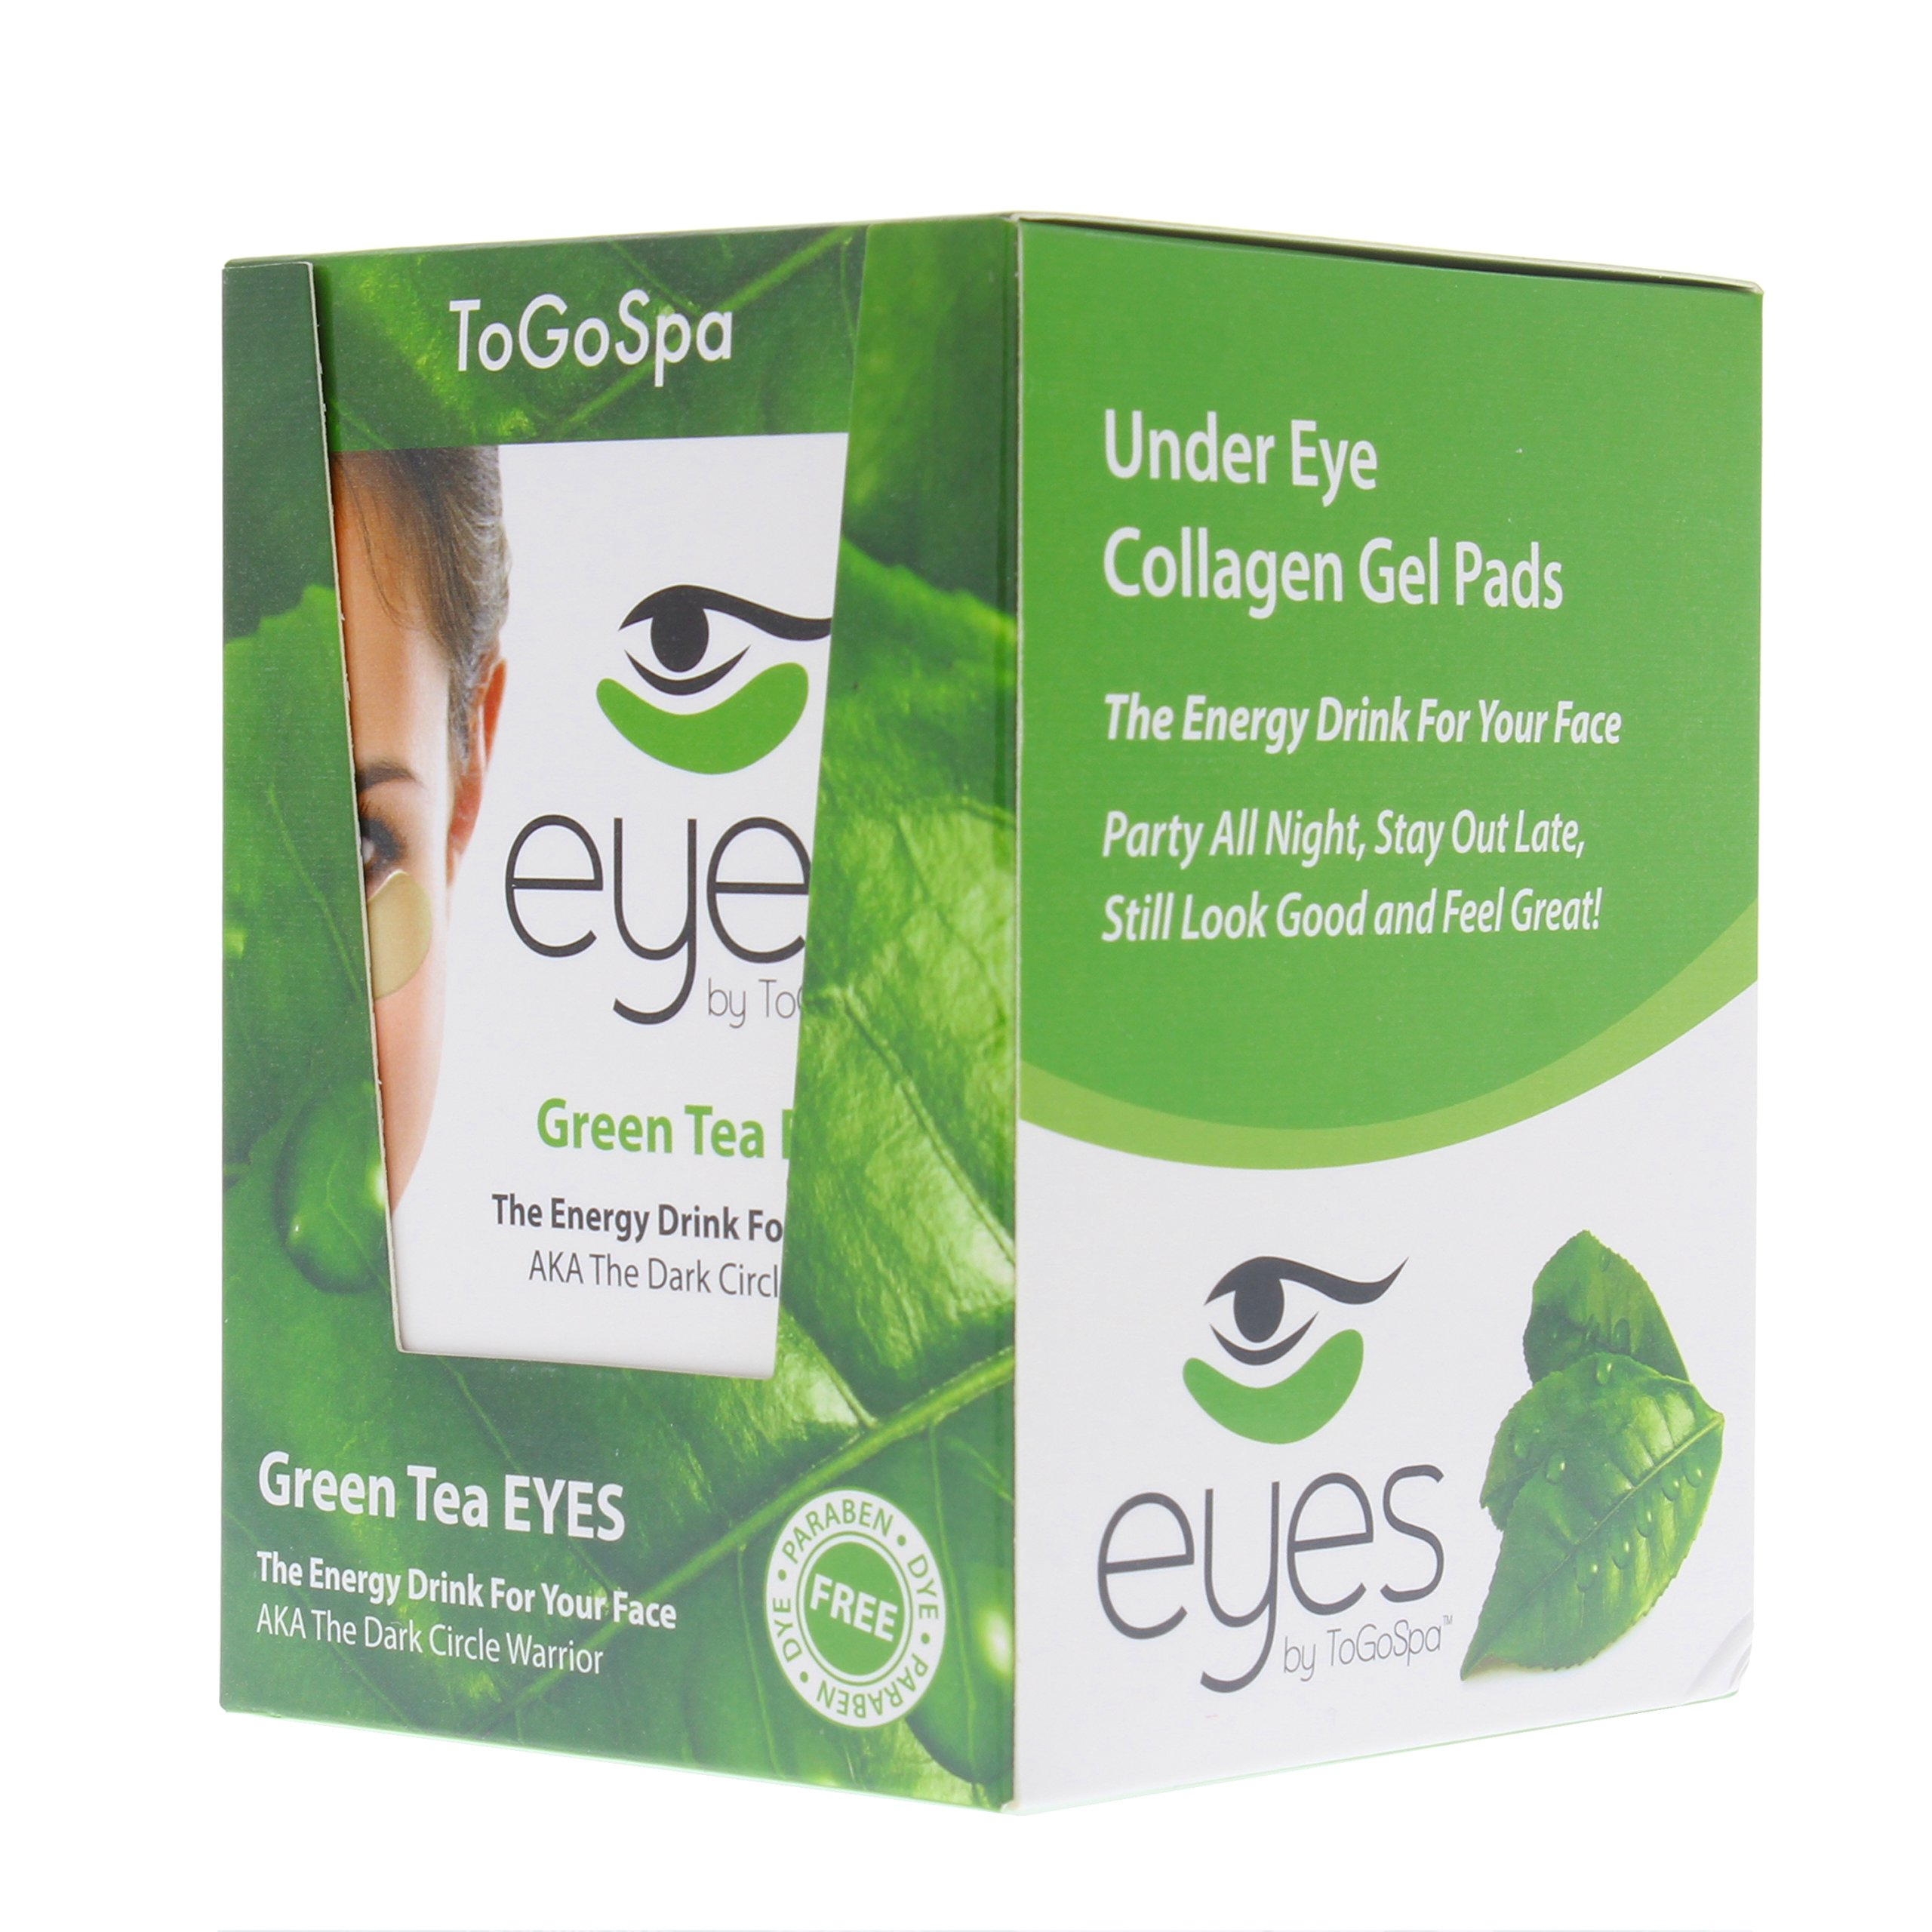 Green Tea EYES by ToGoSpa – Premium Anti-Aging Collagen Gel Pads for Puffiness, Dark Circles, and Wrinkles – Under Eye Rejuvenation for Men & Women - 10 Pack – 30 Treatments